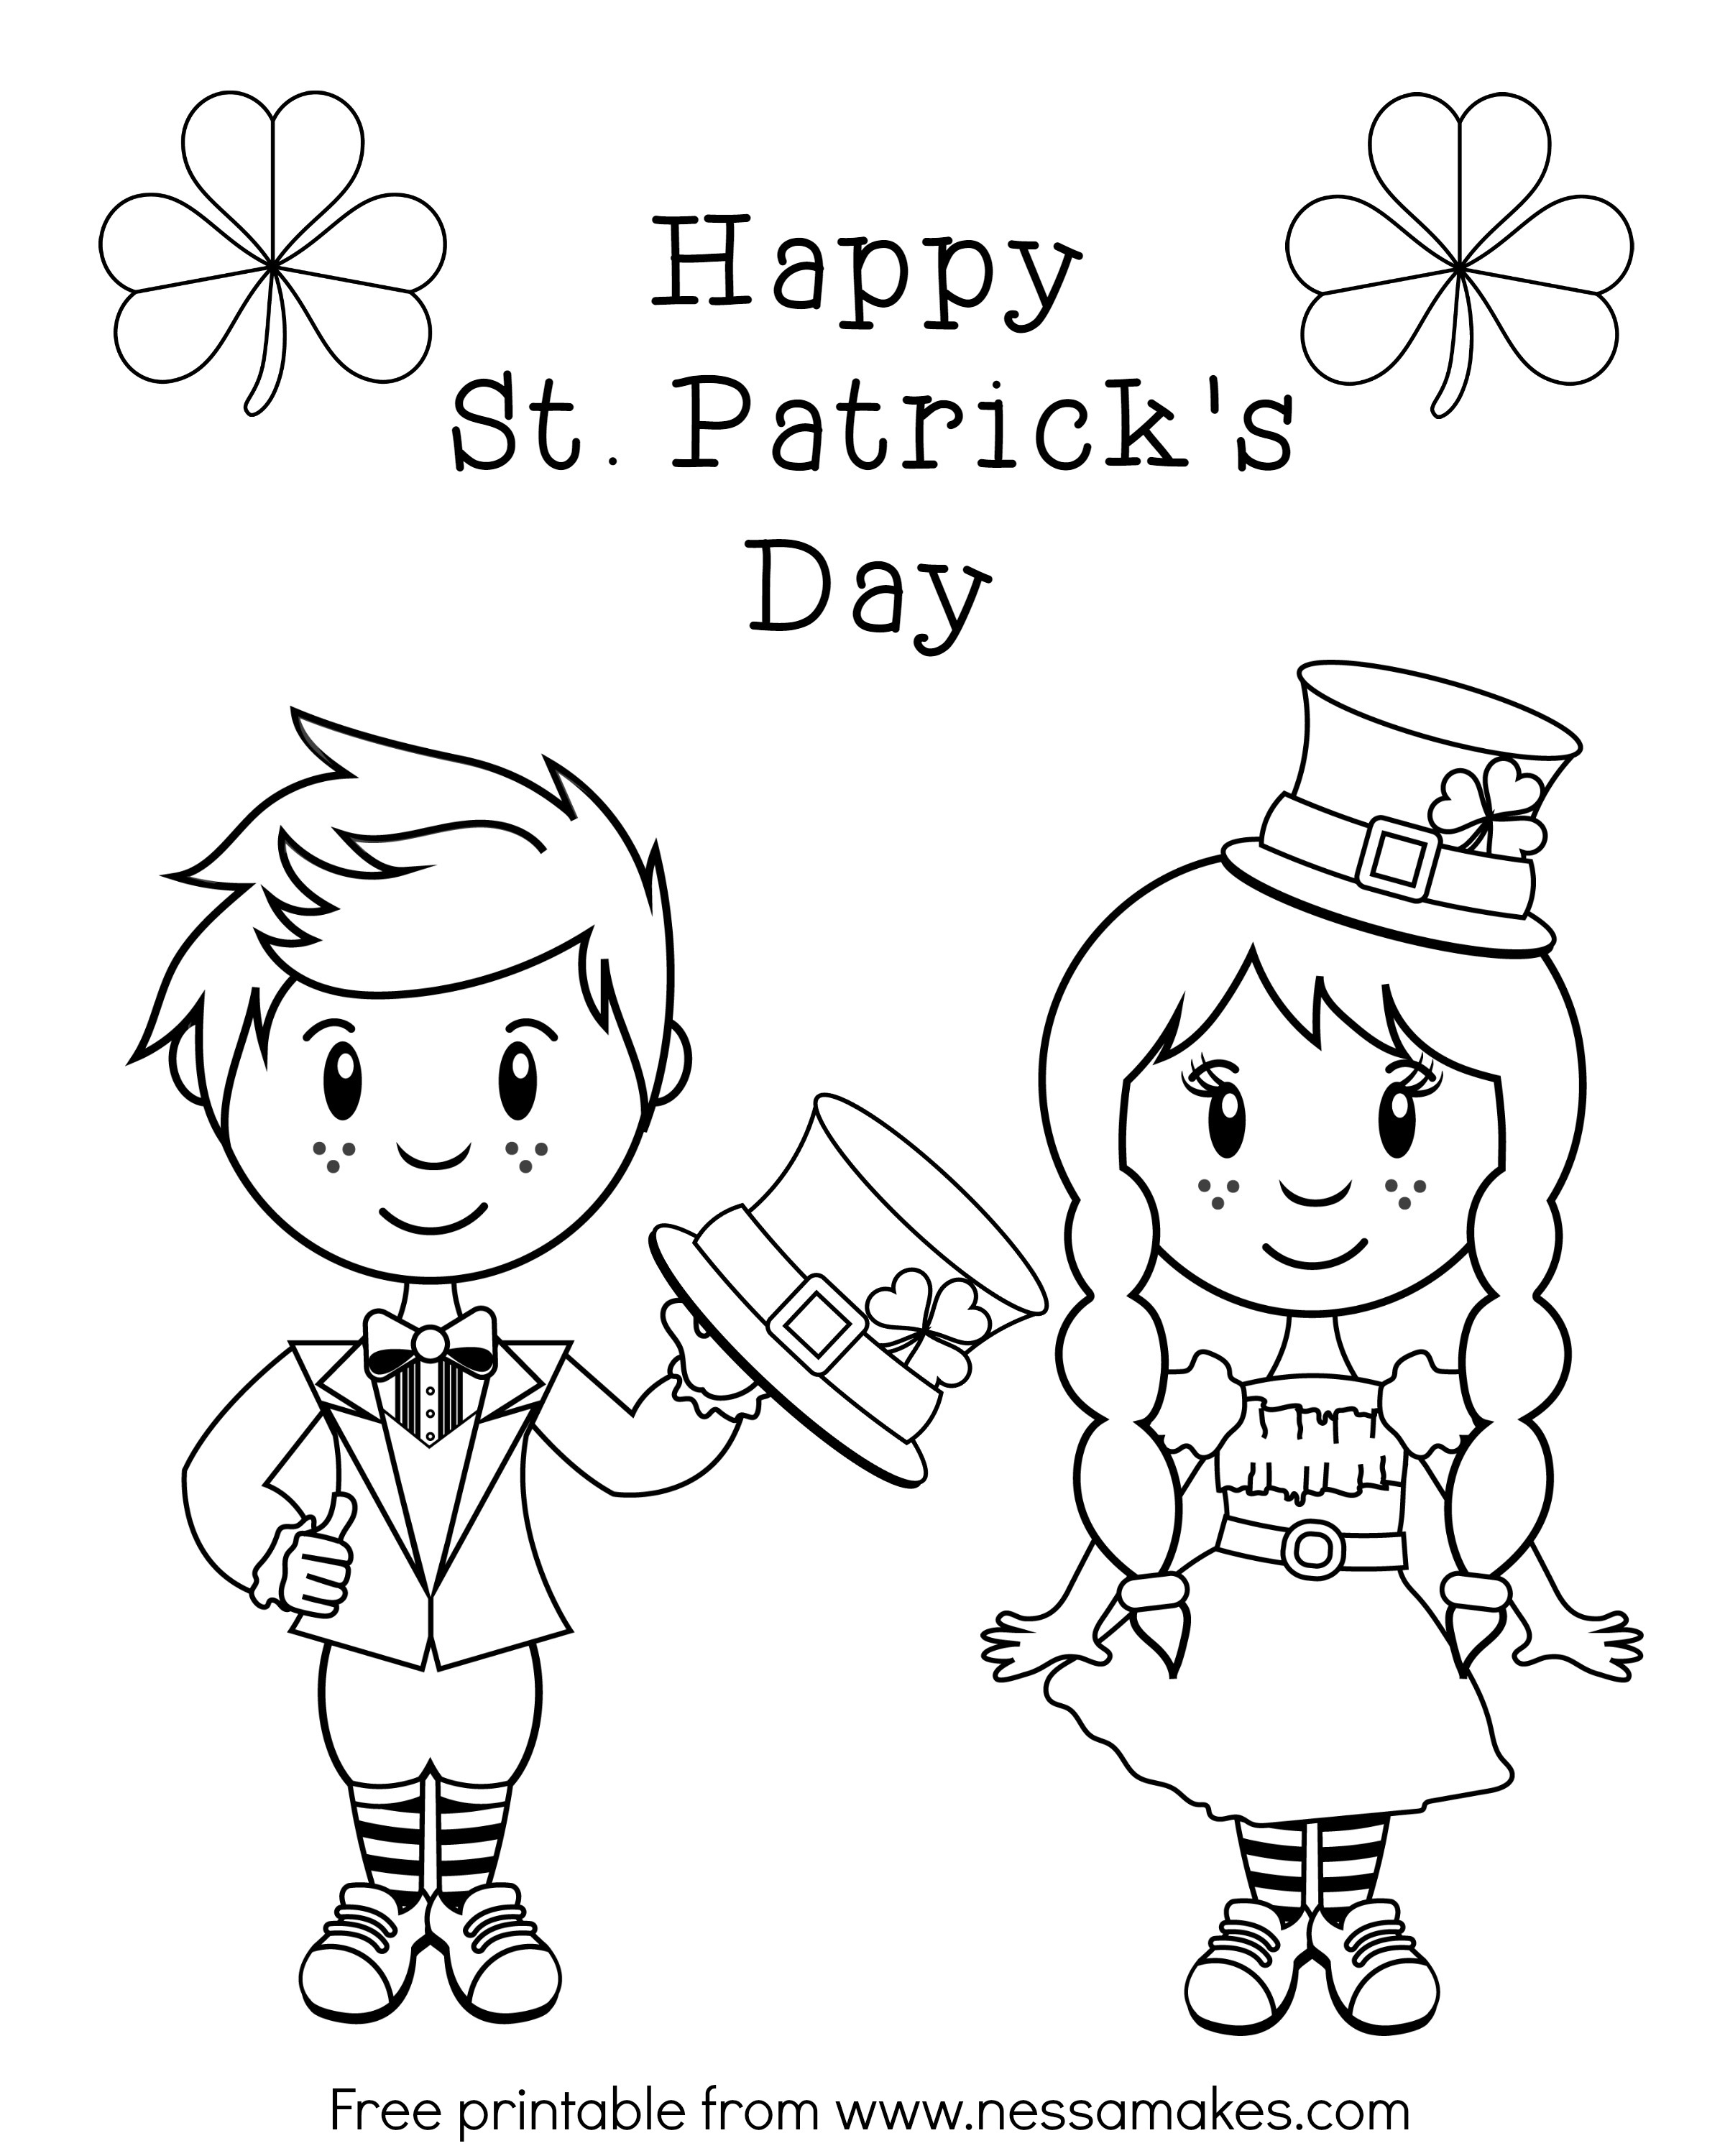 Irish Girl Coloring Pages At Getcolorings